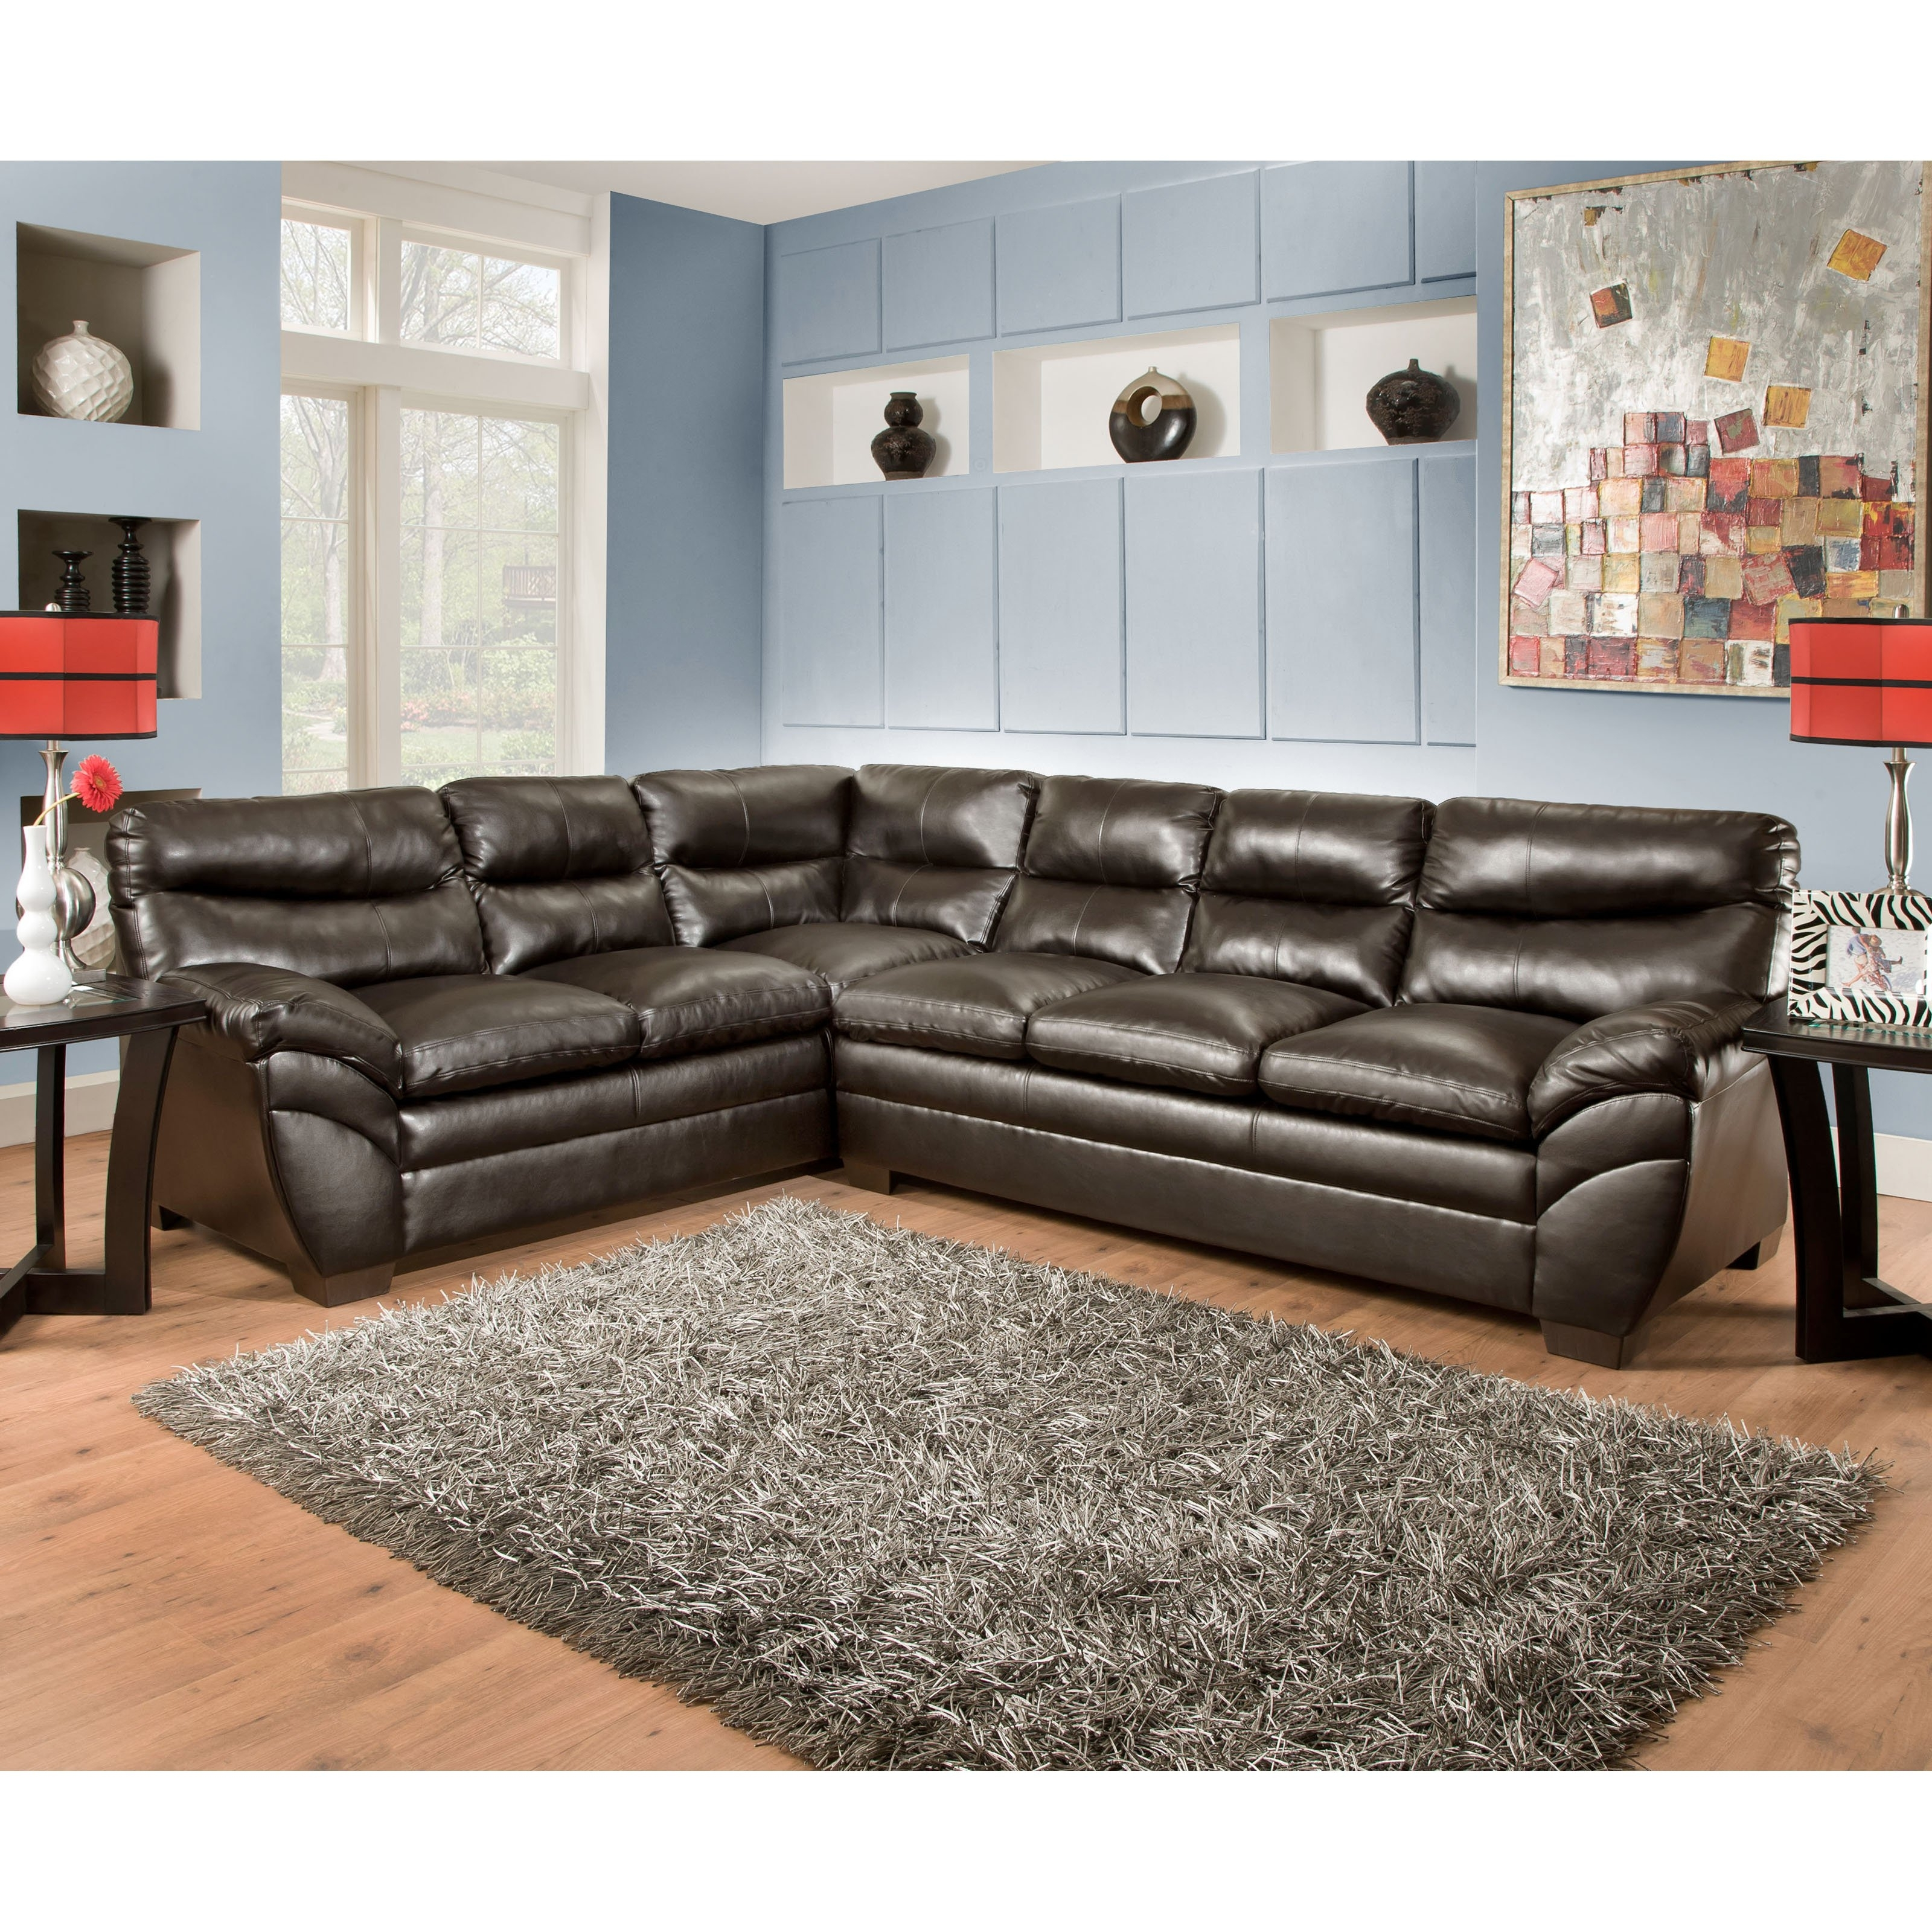 Simmons Soho Bonded Leather Sectional | Hayneedle with regard to Lucy Grey 2 Piece Sleeper Sectionals With Laf Chaise (Image 27 of 30)